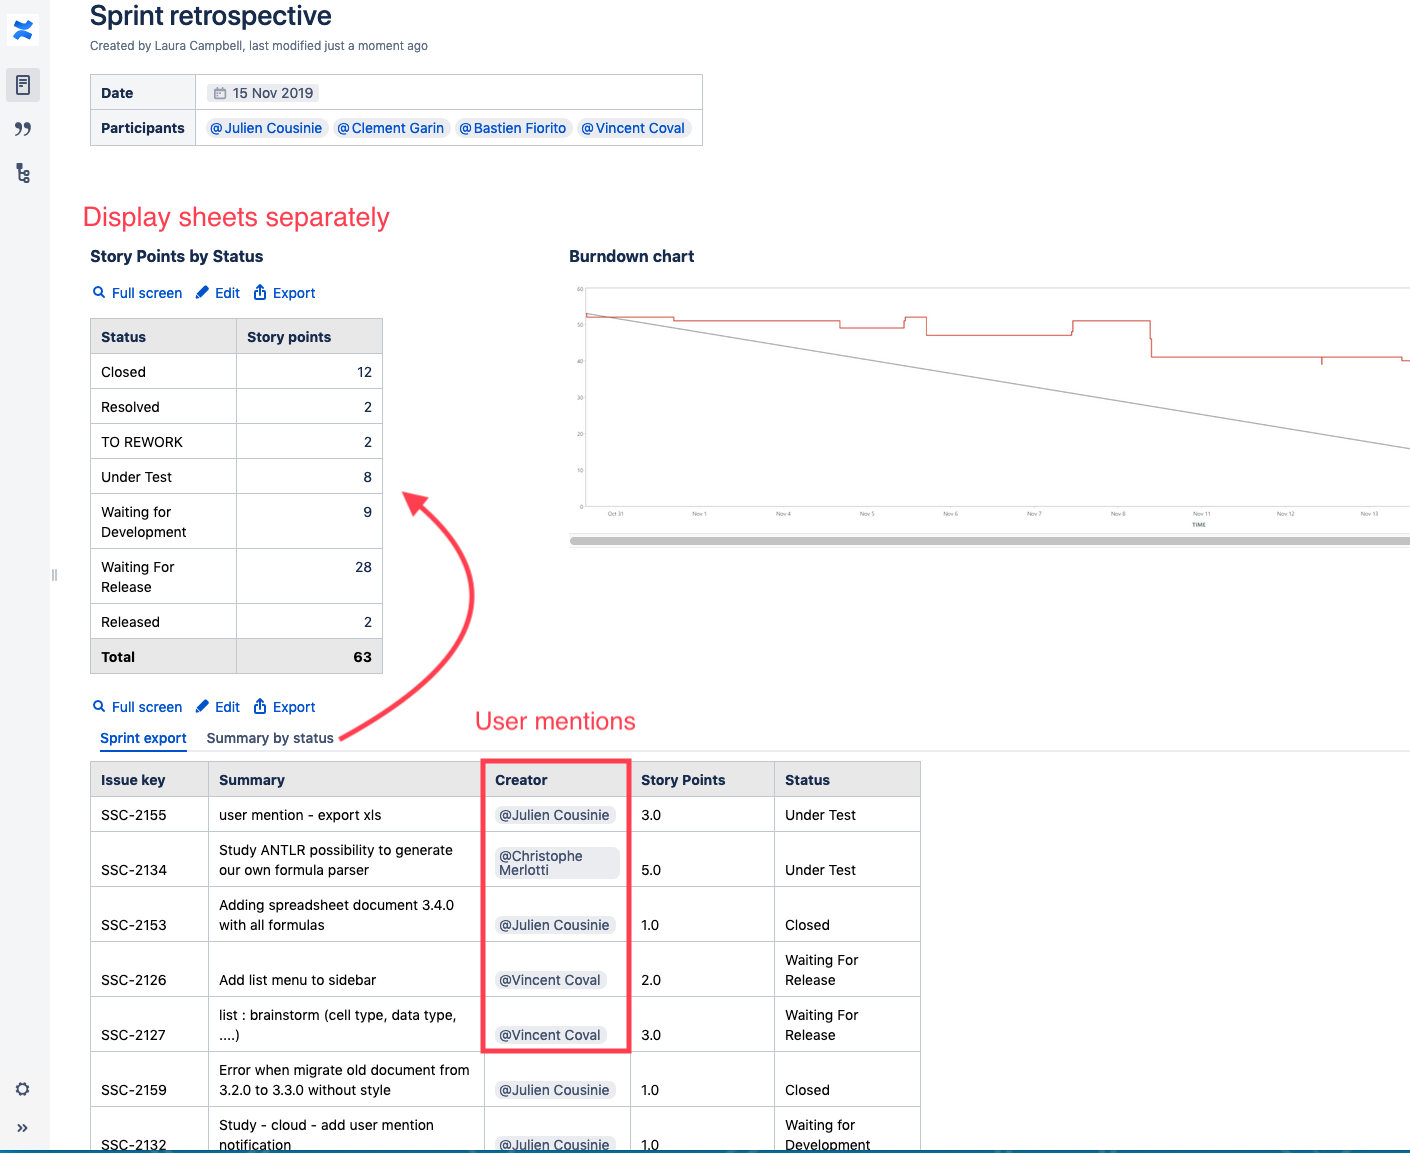 Elements Spreadsheet on Confluence page for sprint retrospective